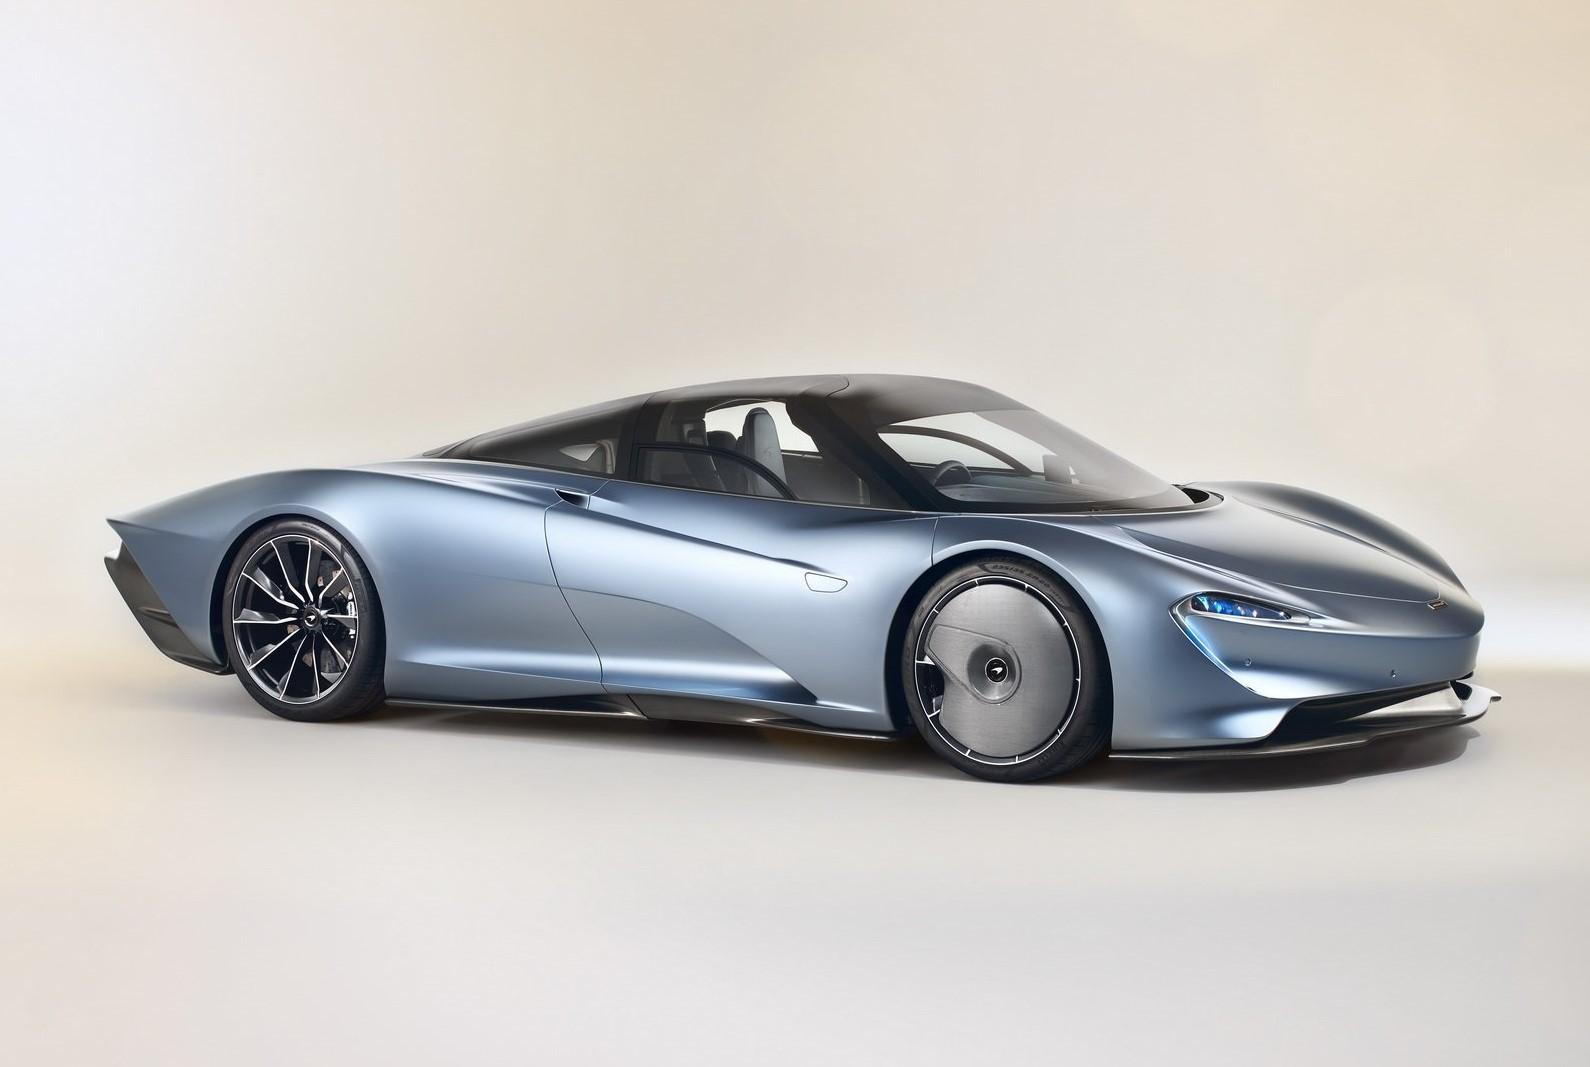 McLaren Speedtail: Photos and complete details